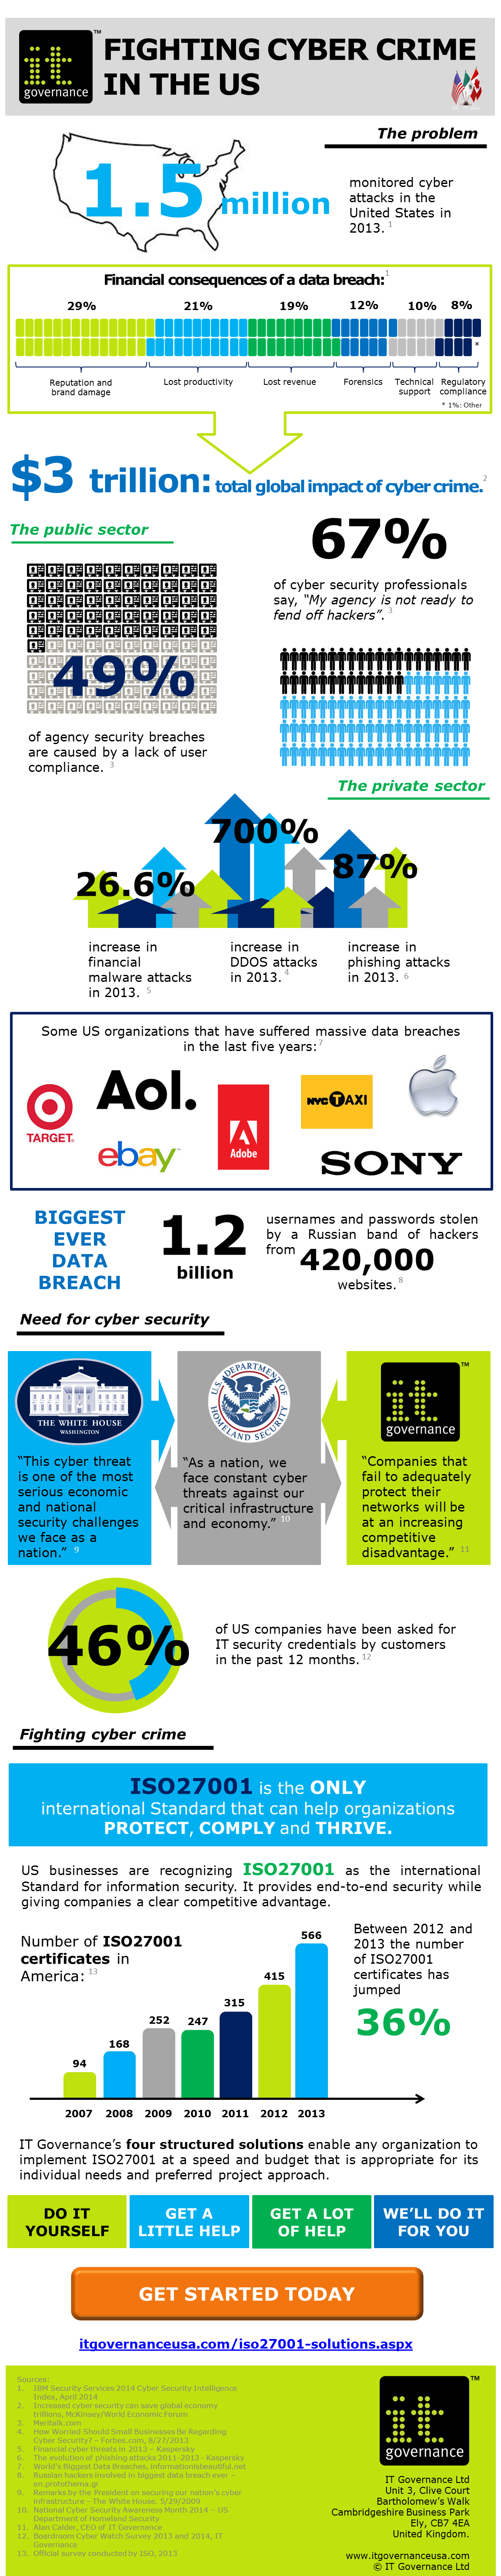 Fighting cyber crime in the US infographic